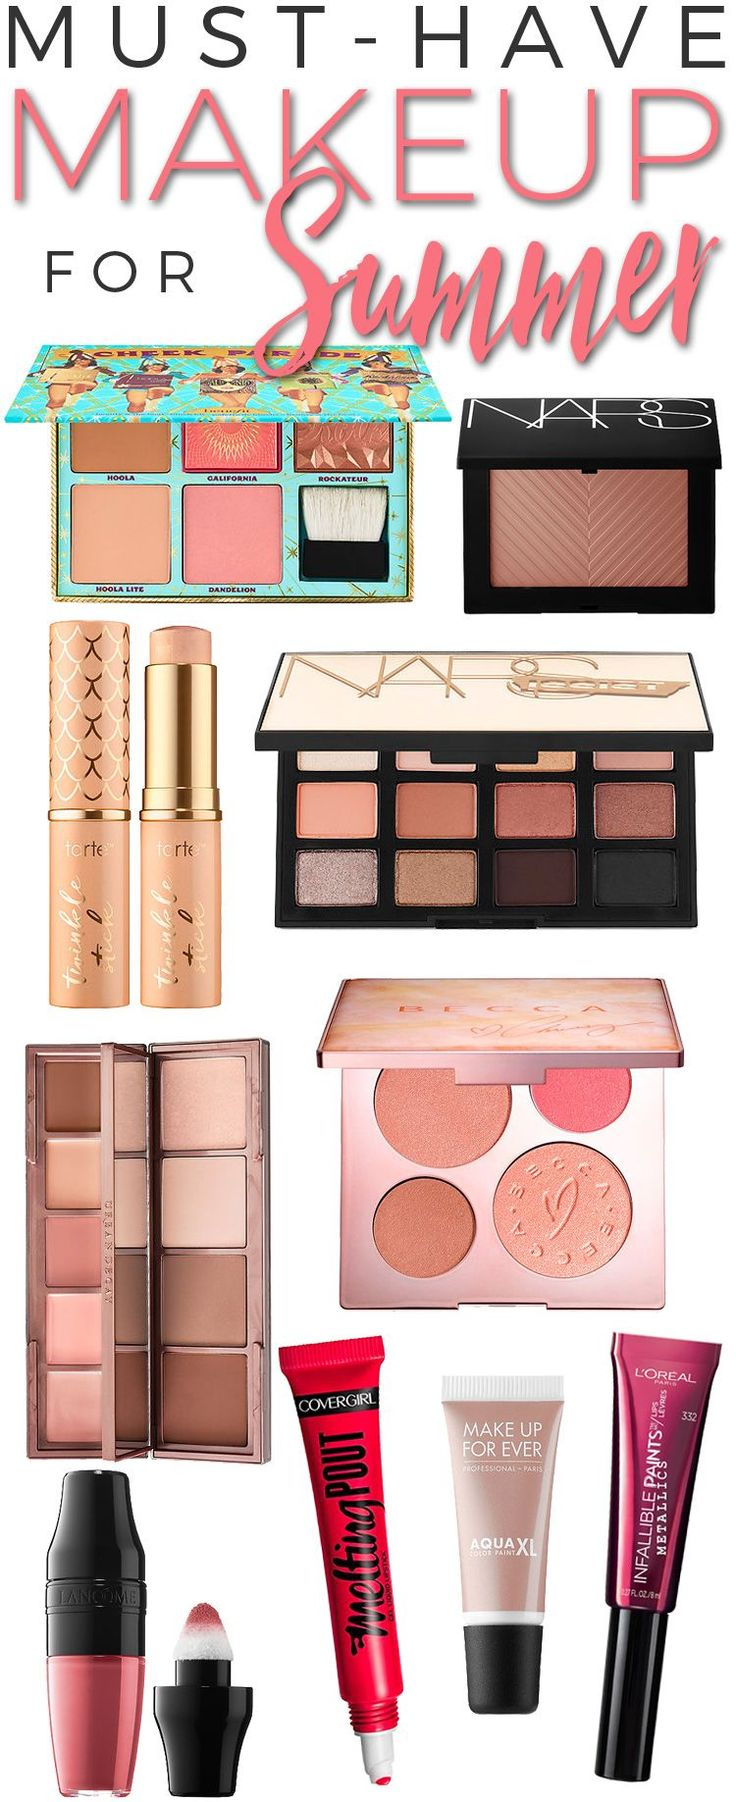 It's time for new makeup — new summer makeup, that is. With all of the new  summer makeup launches, it is very easy to get confused as to which  products you need and need now for your summer makeup bag. Whether you are  looking for a new lip color, face palette, bronzer or eye shadow, I have  y